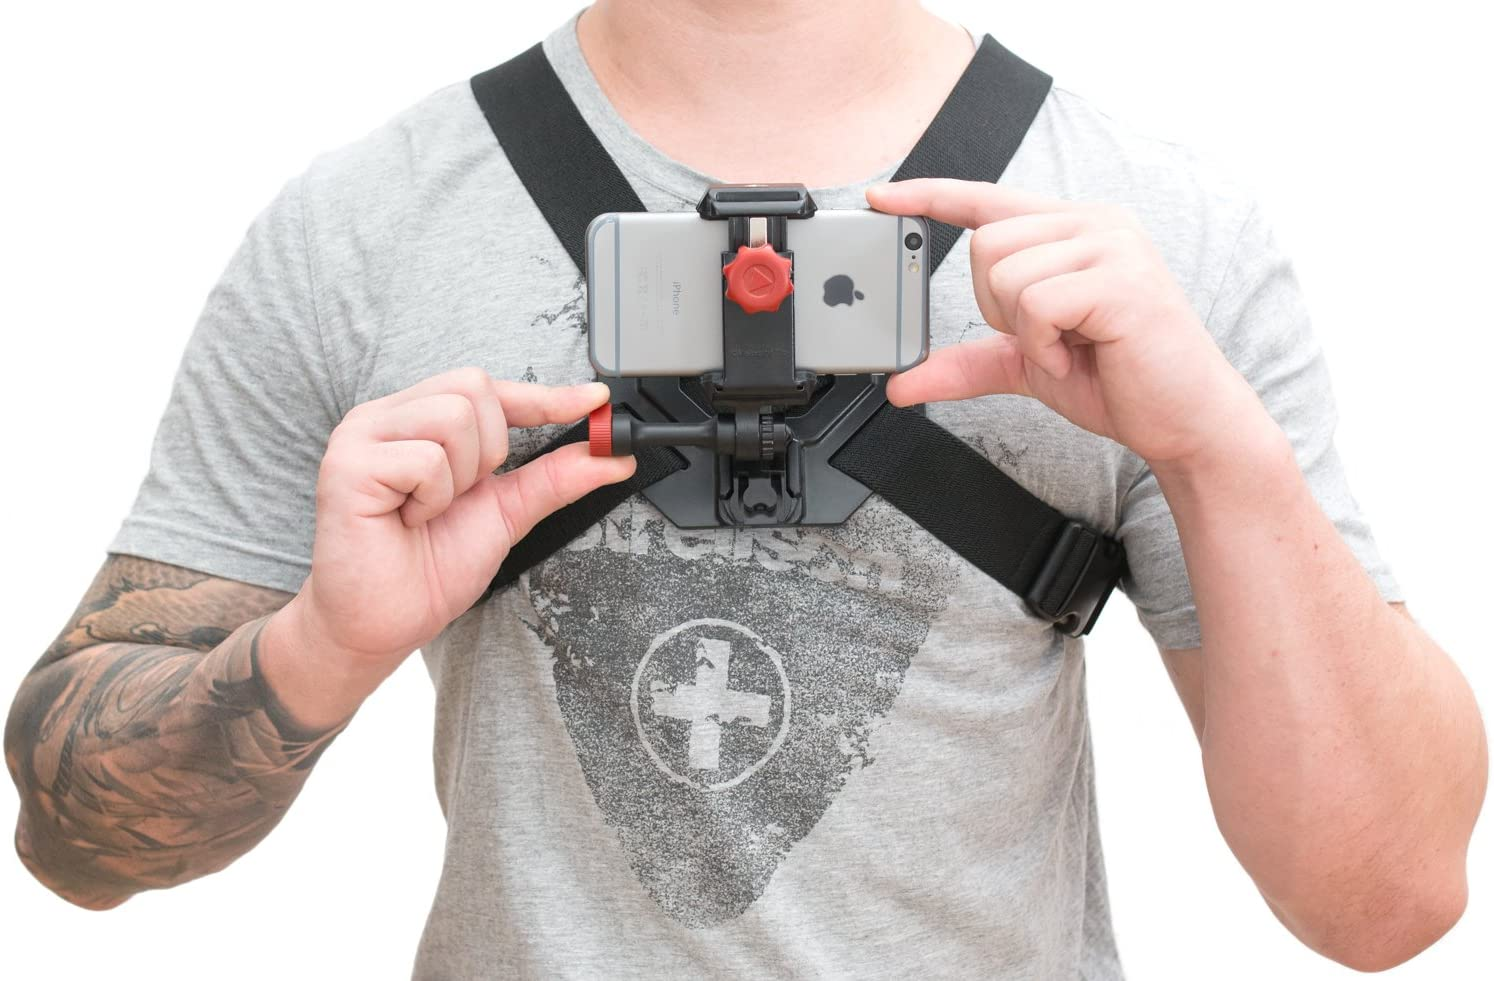 iPhone 5 Chest Mount for Video